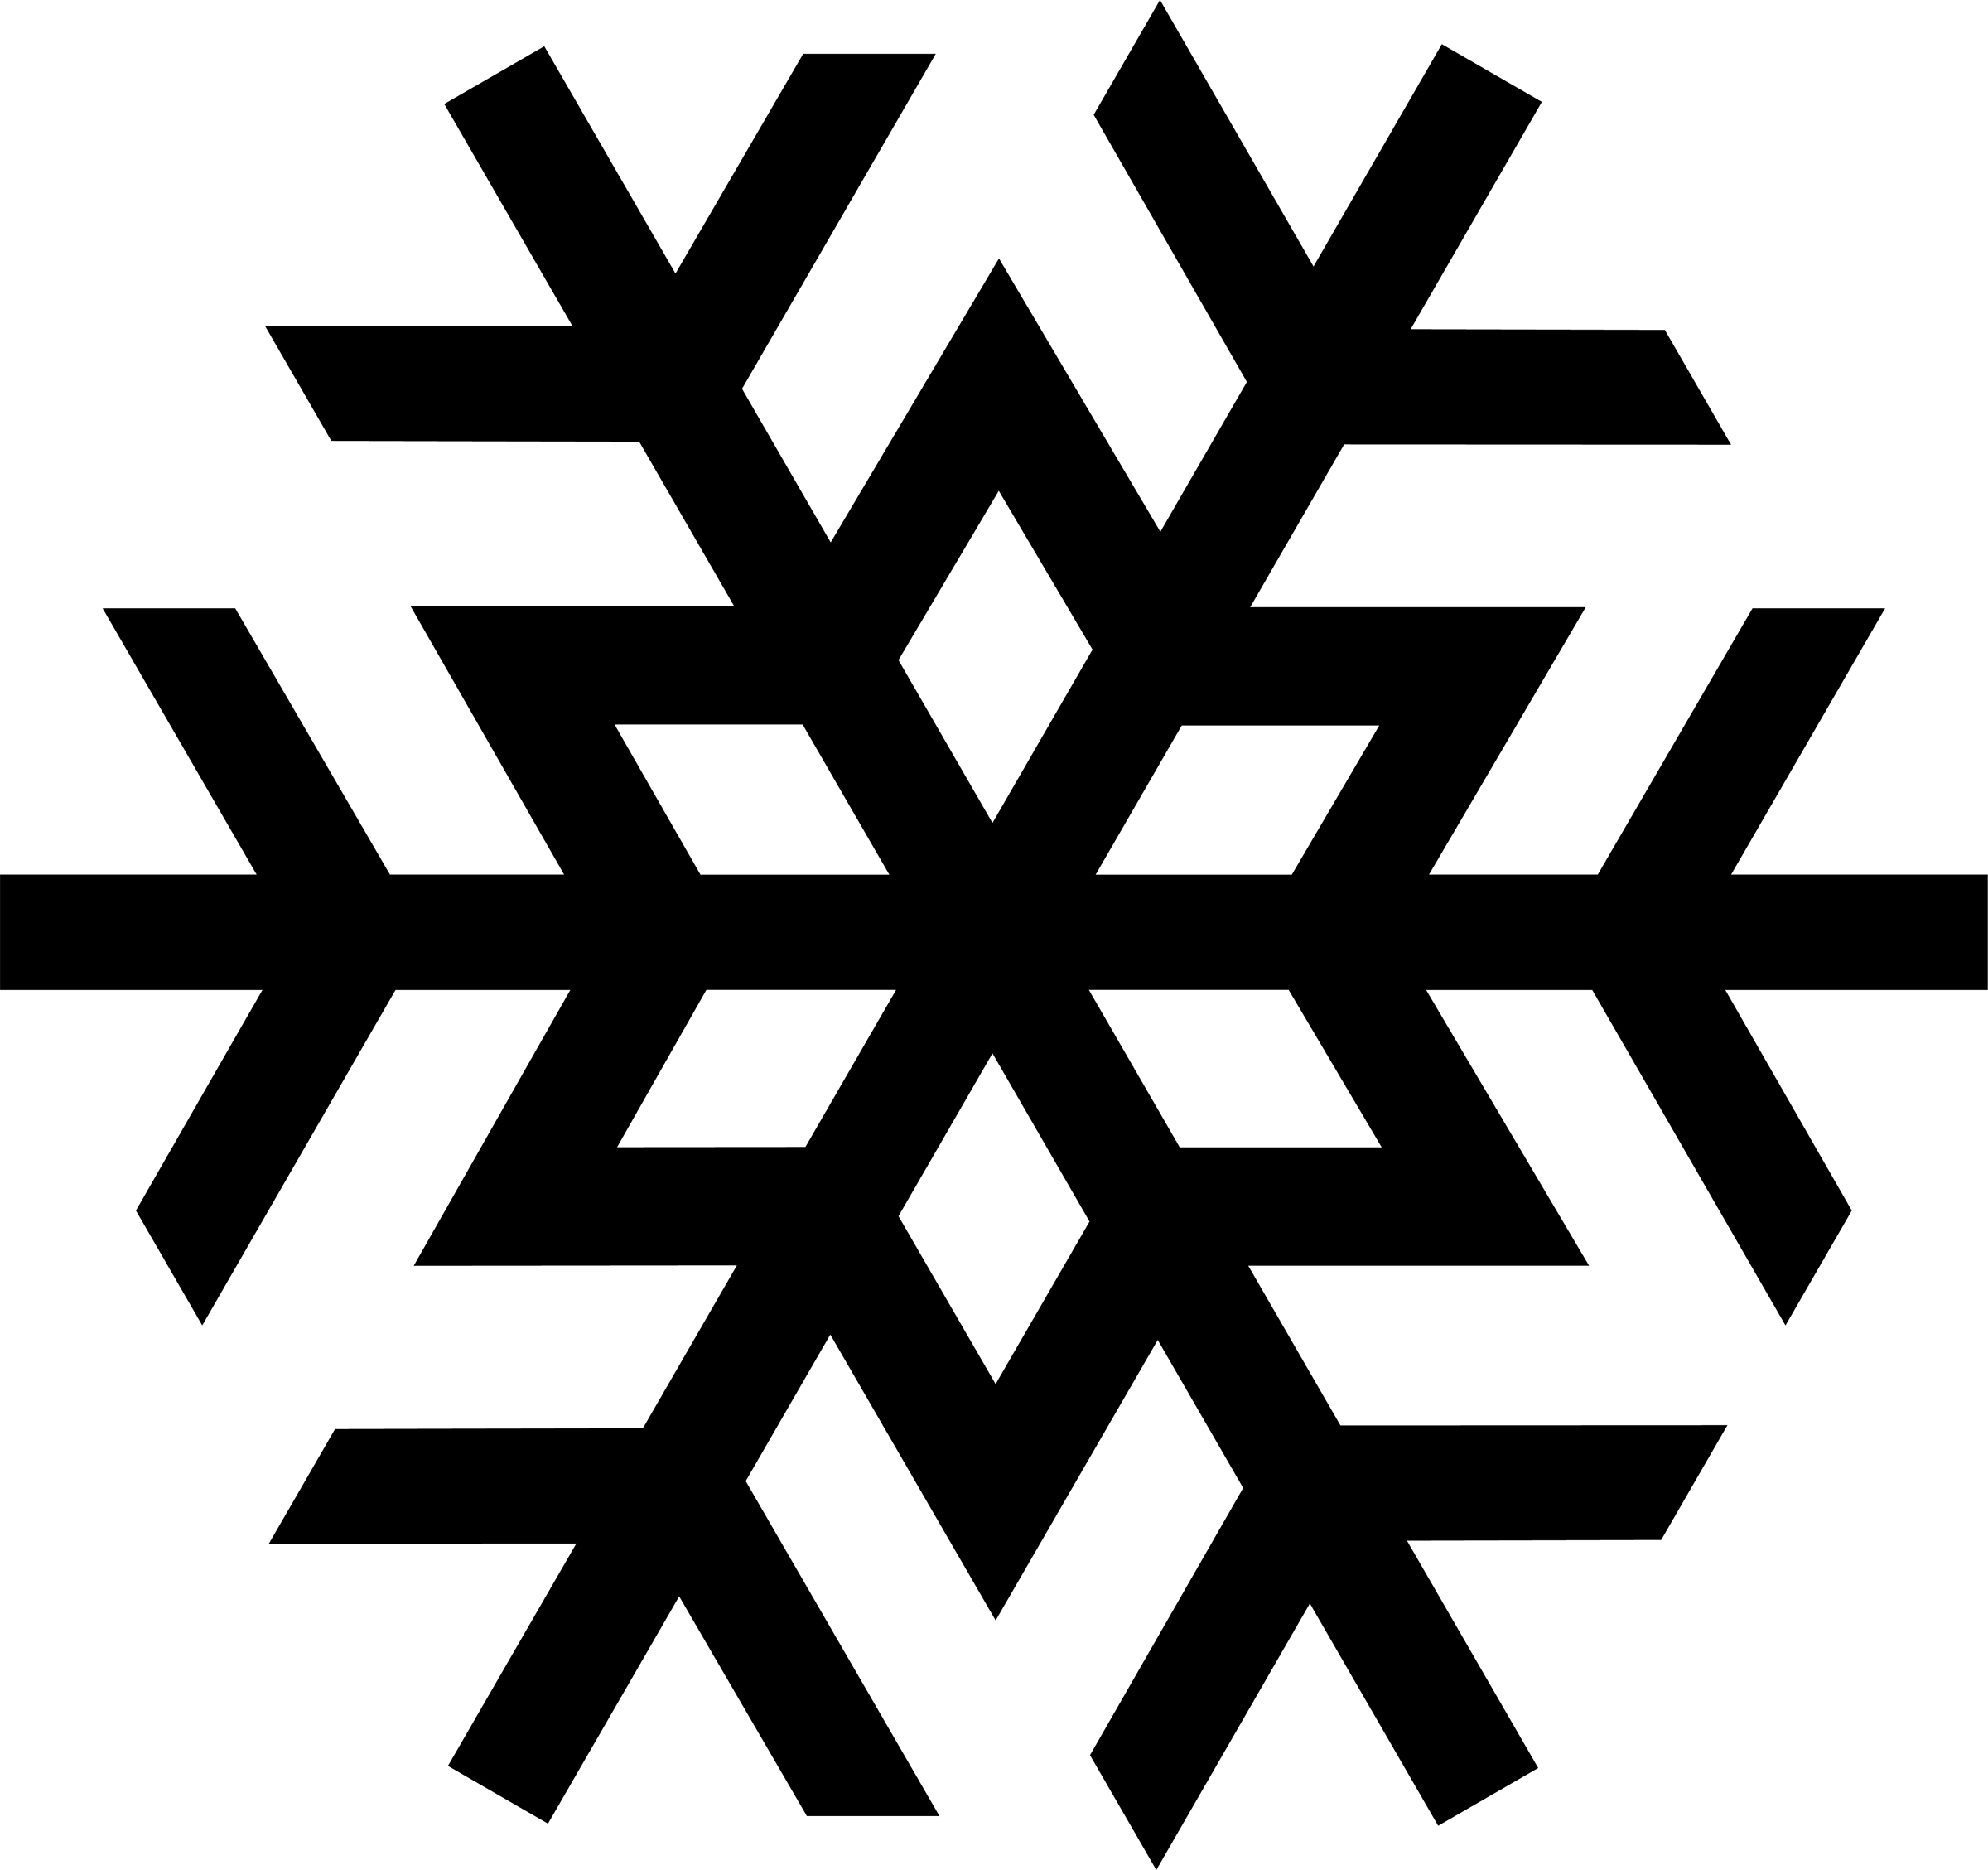 Snowflake Designs - ClipArt Best